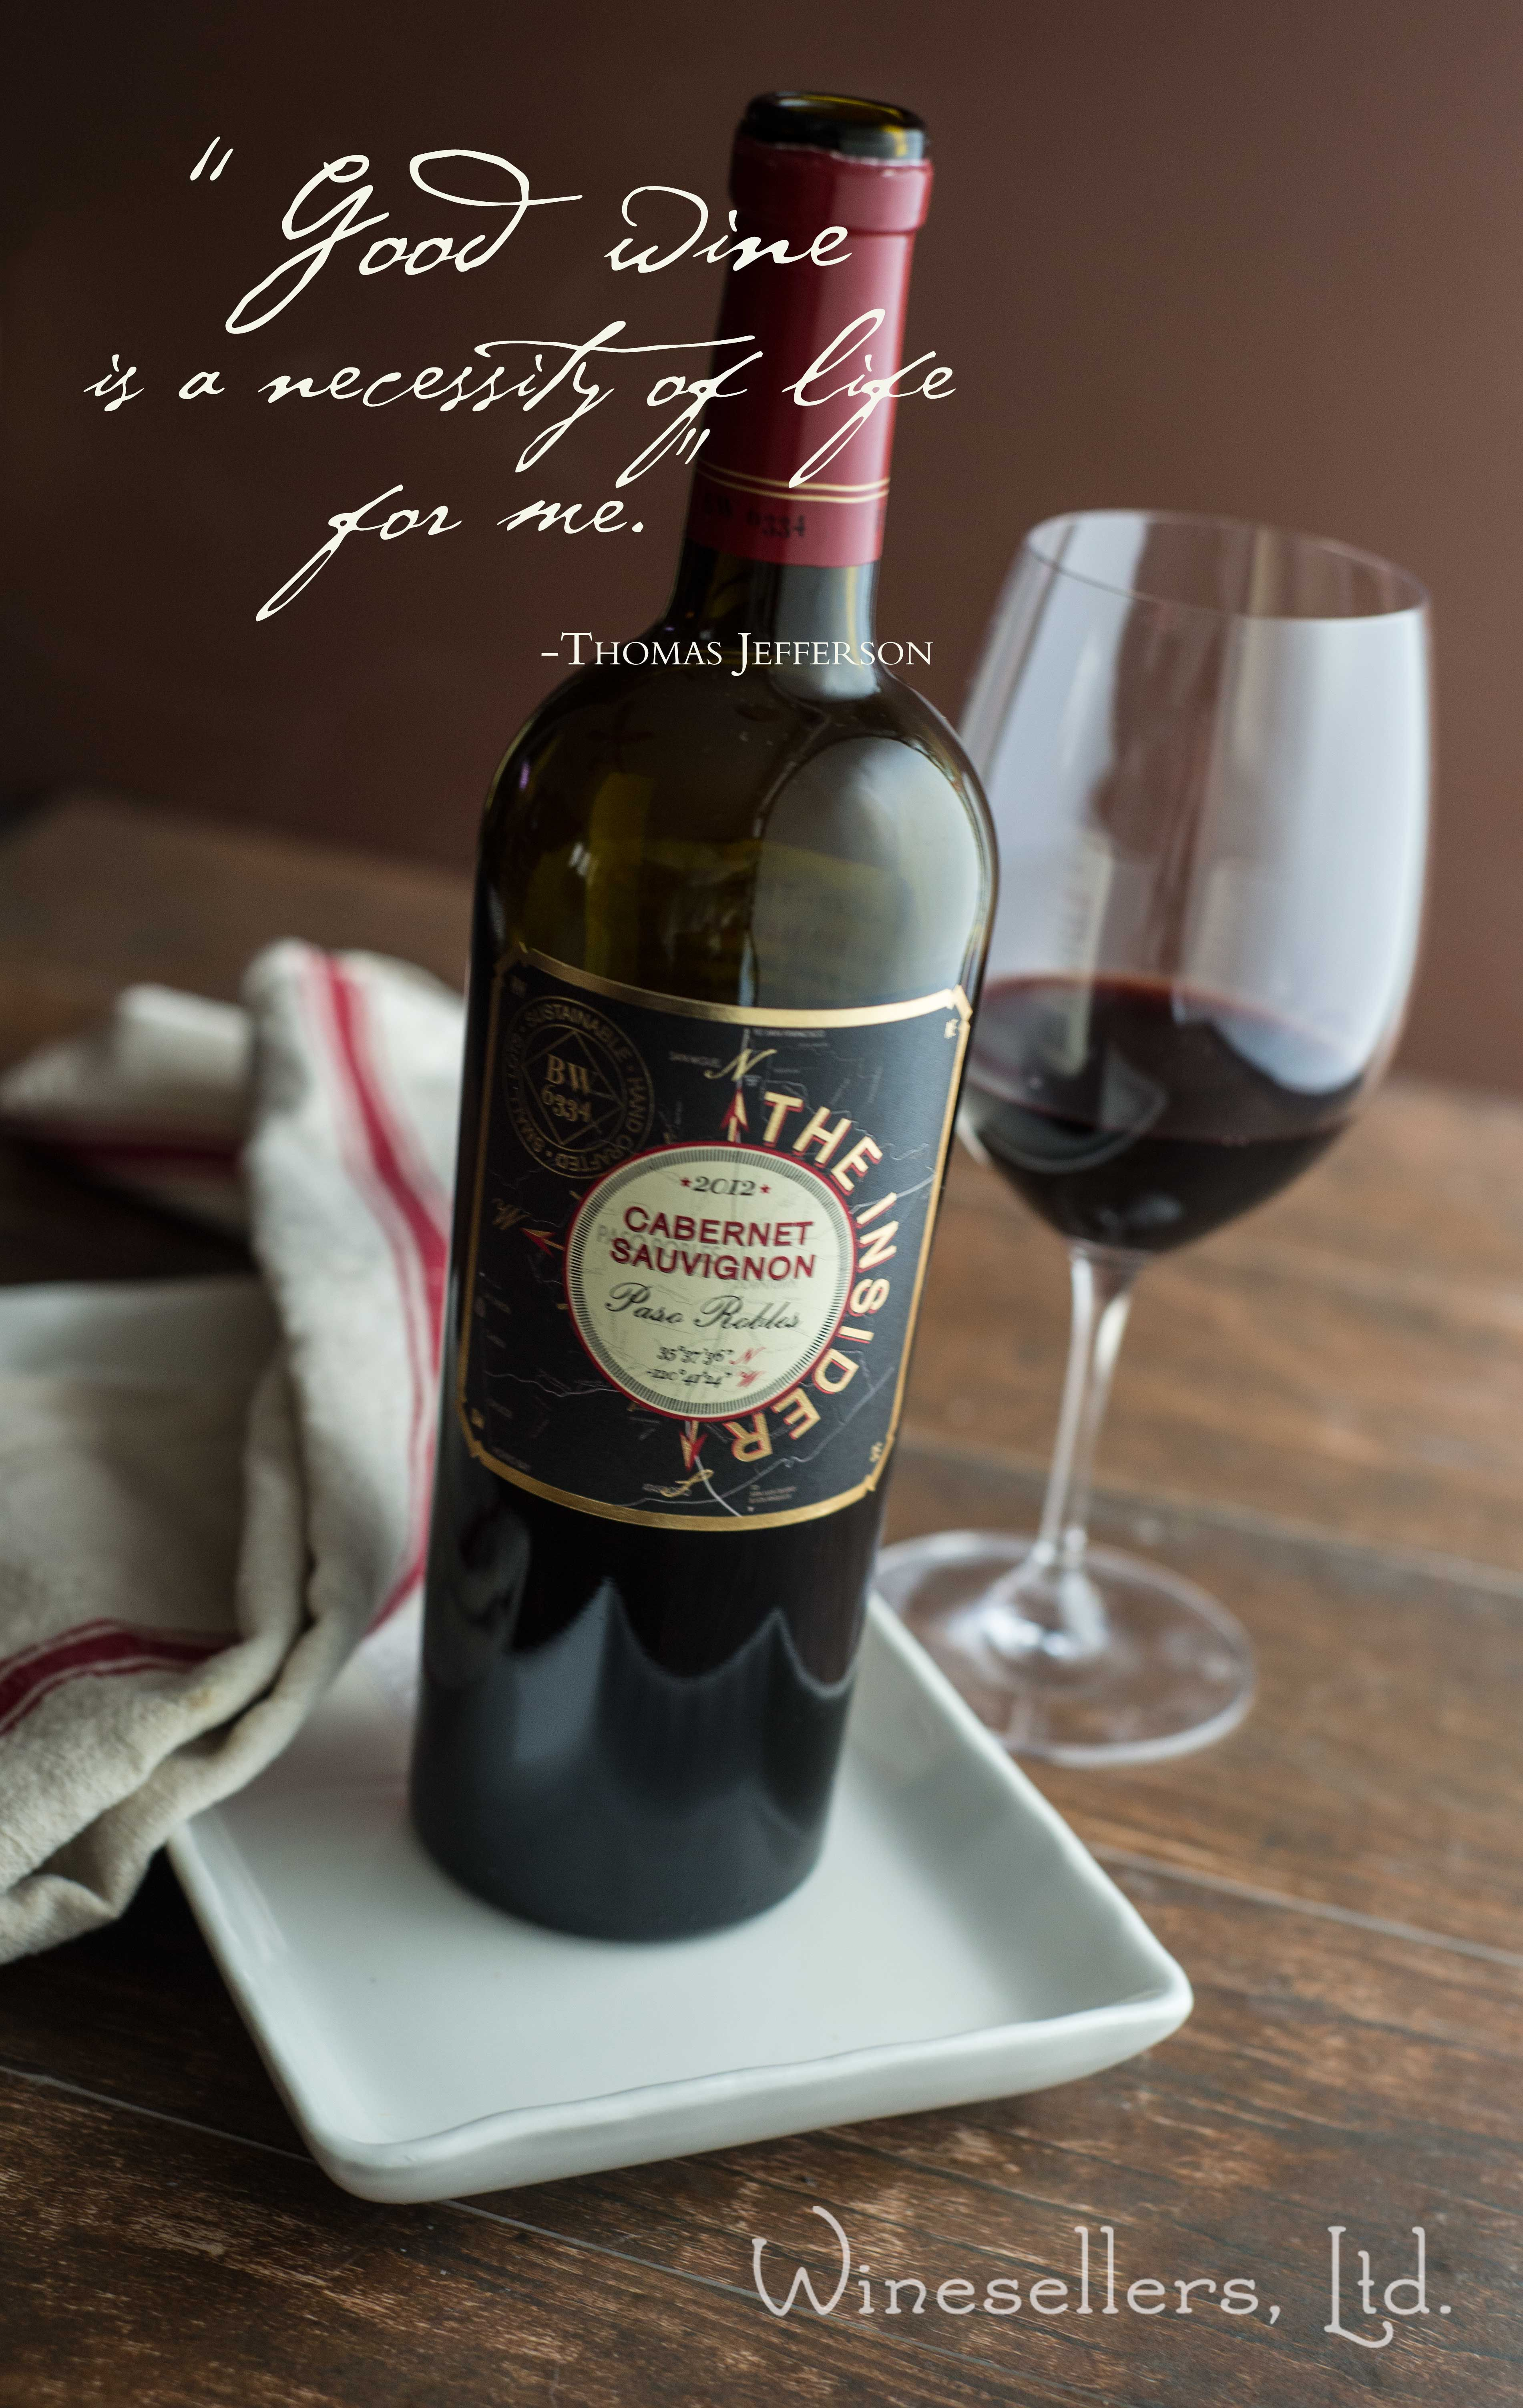 The aromas are classic Bordeaux, black cherry, and rich plum. It has intense berry fruit, bing cherry, and boysenberry flavors.